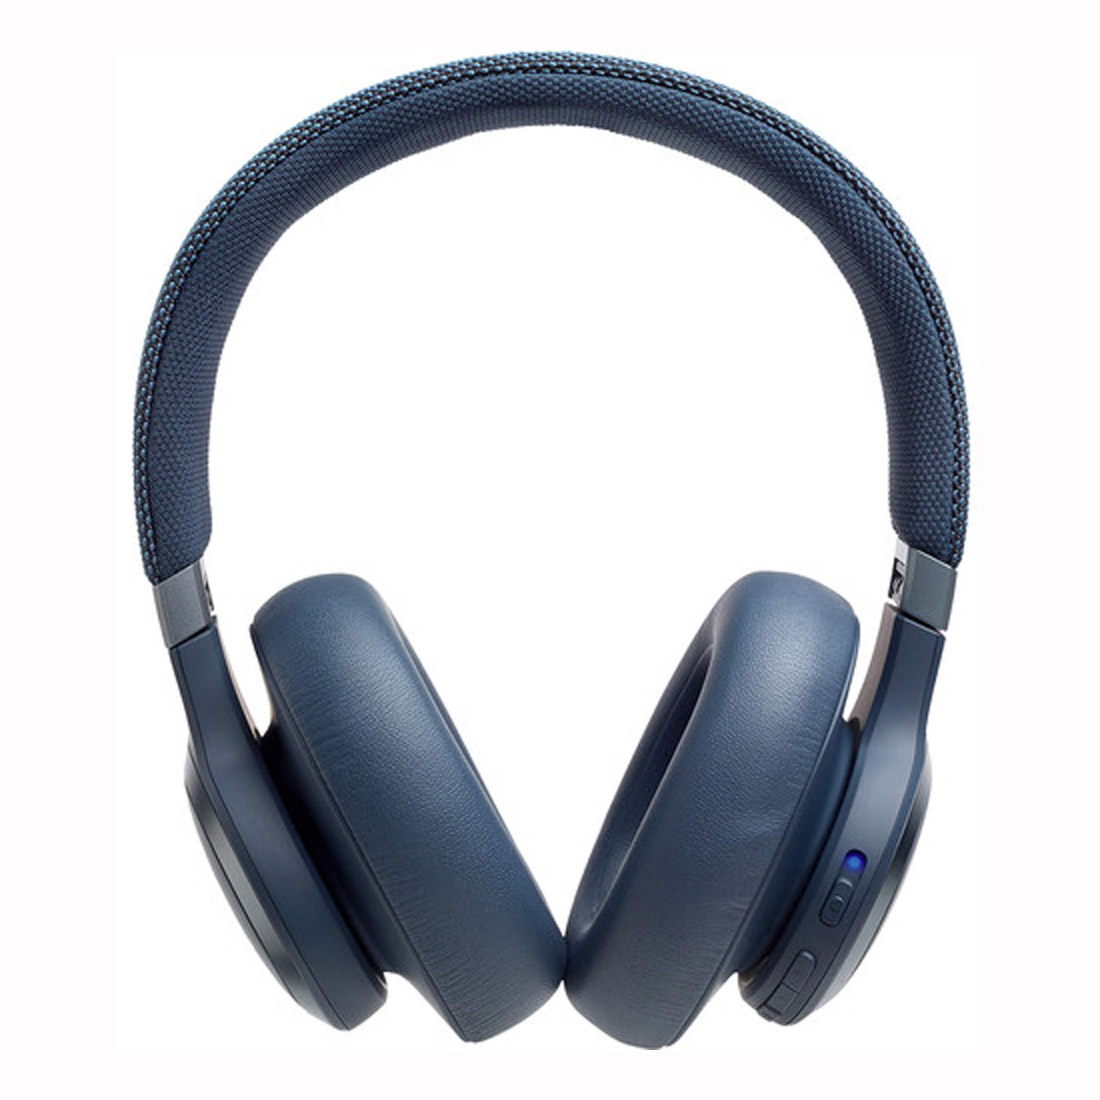 JBL Live 650BTNC Wireless Over-Ear Noise-Cancelling Headphones - Blue